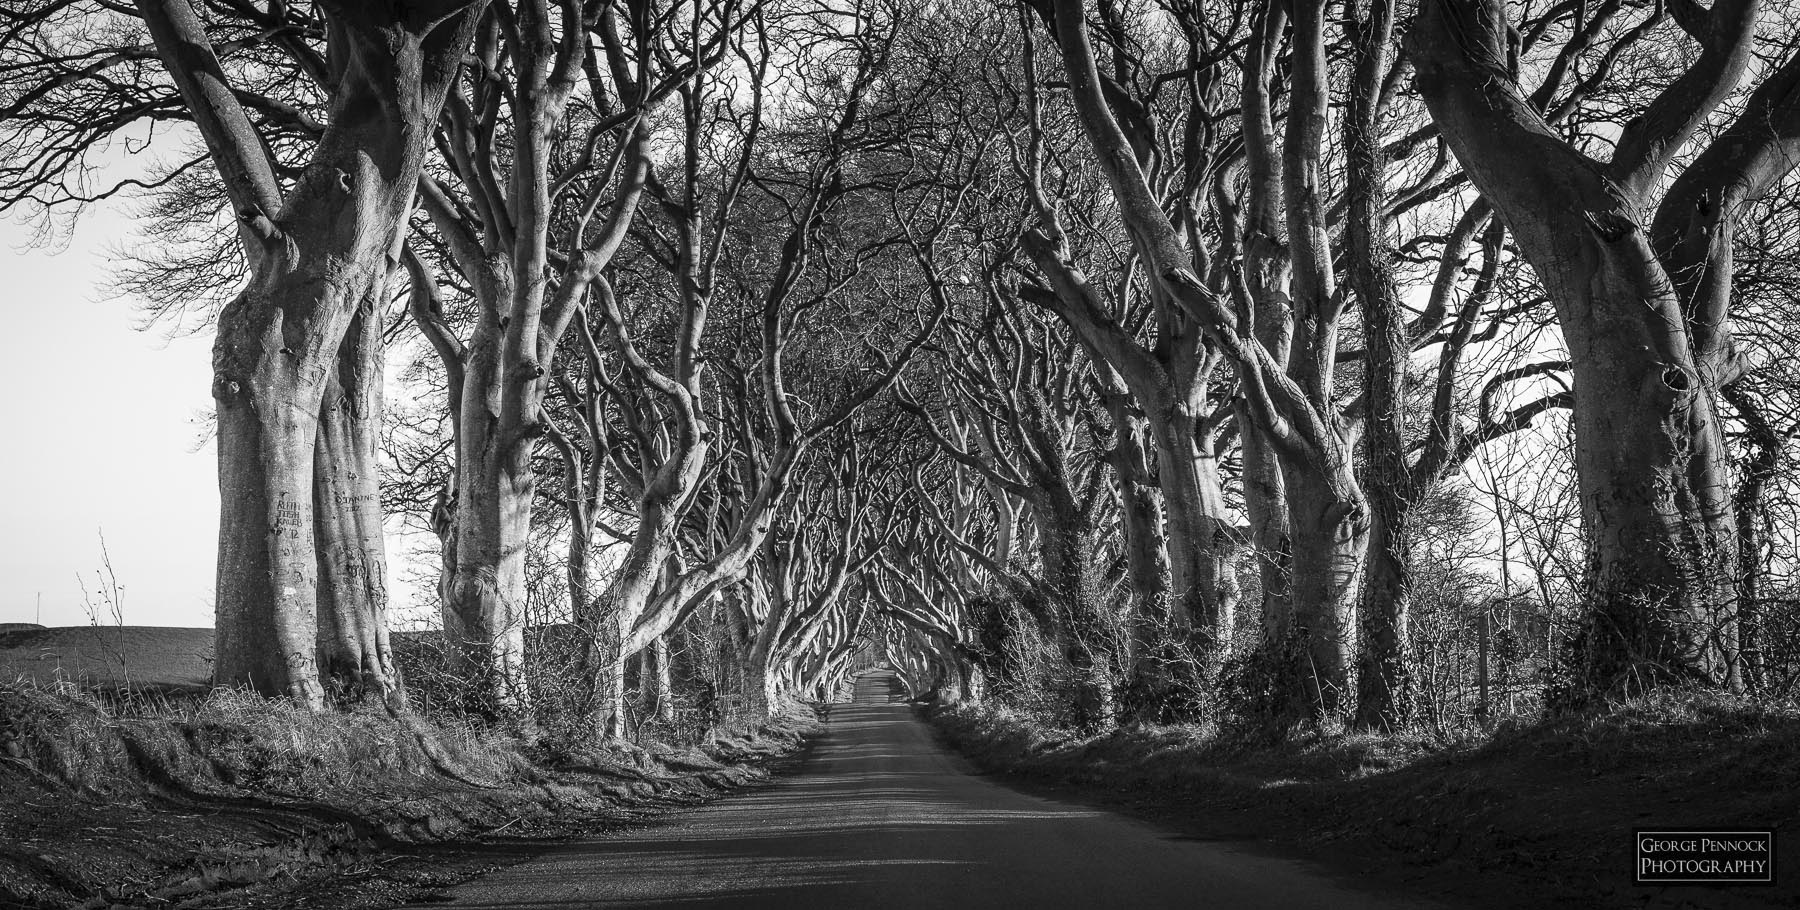 The Dark Hedges – Photography and Editing